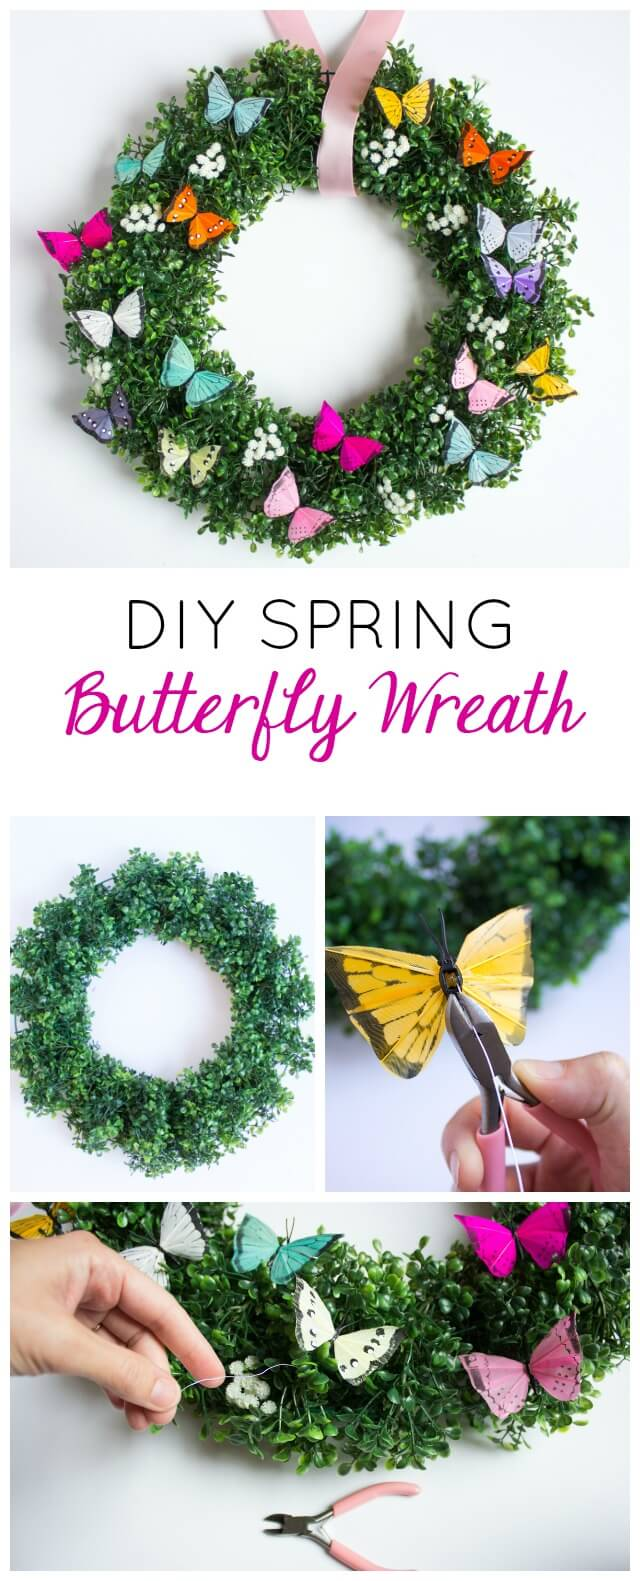 DIY Spring Wreaths with Colorful Butterflies